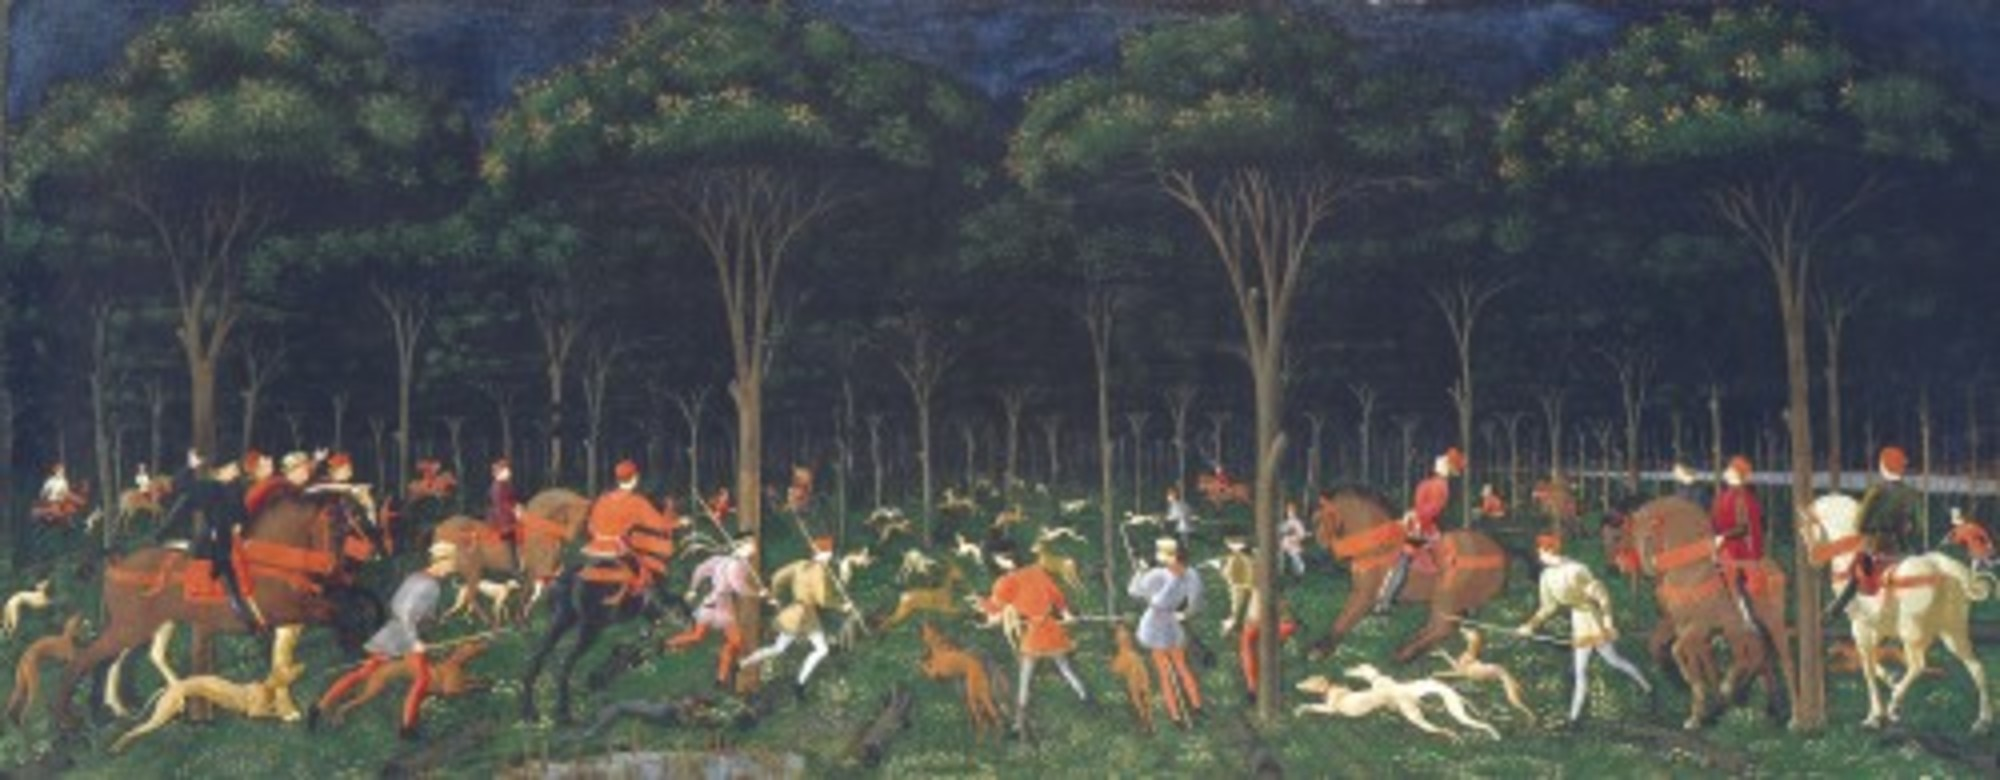 Hunt-in-the-forest-by-paolo-uccello.jpg